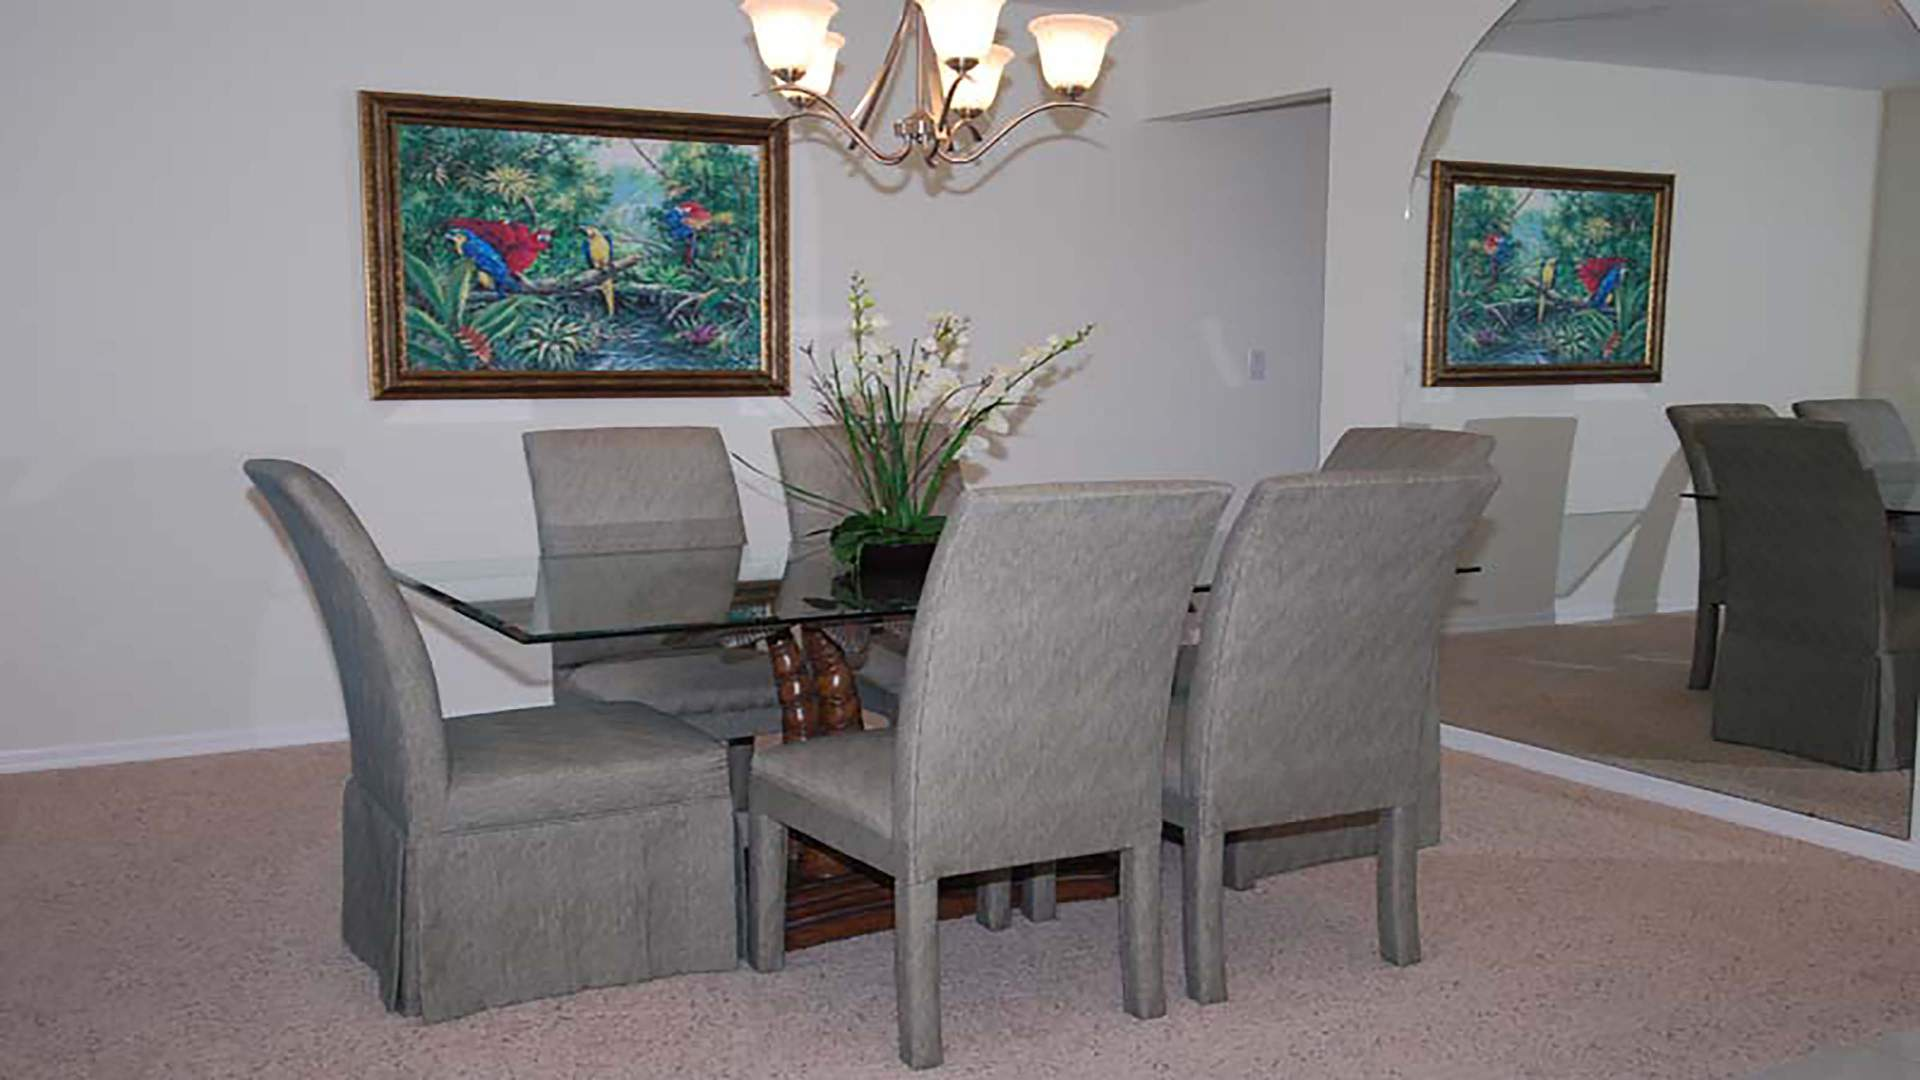 Dinning Area with 6 gray chairs